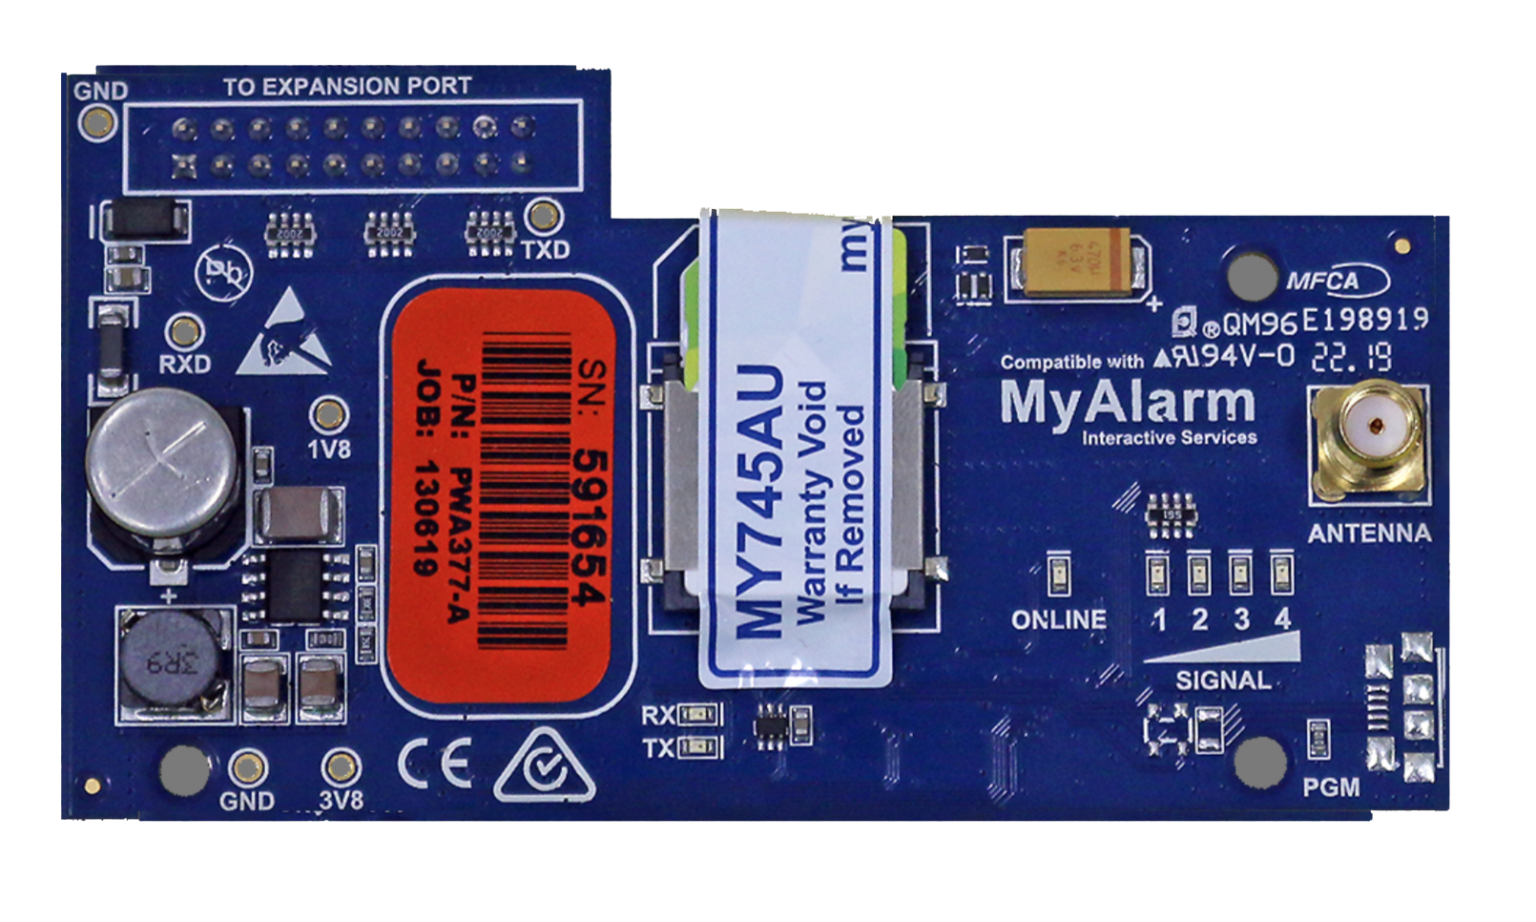 Bosch Solution 6000 4G GPRS Module for use with MyAlarm iFob Control App & Back to Base Monitoring